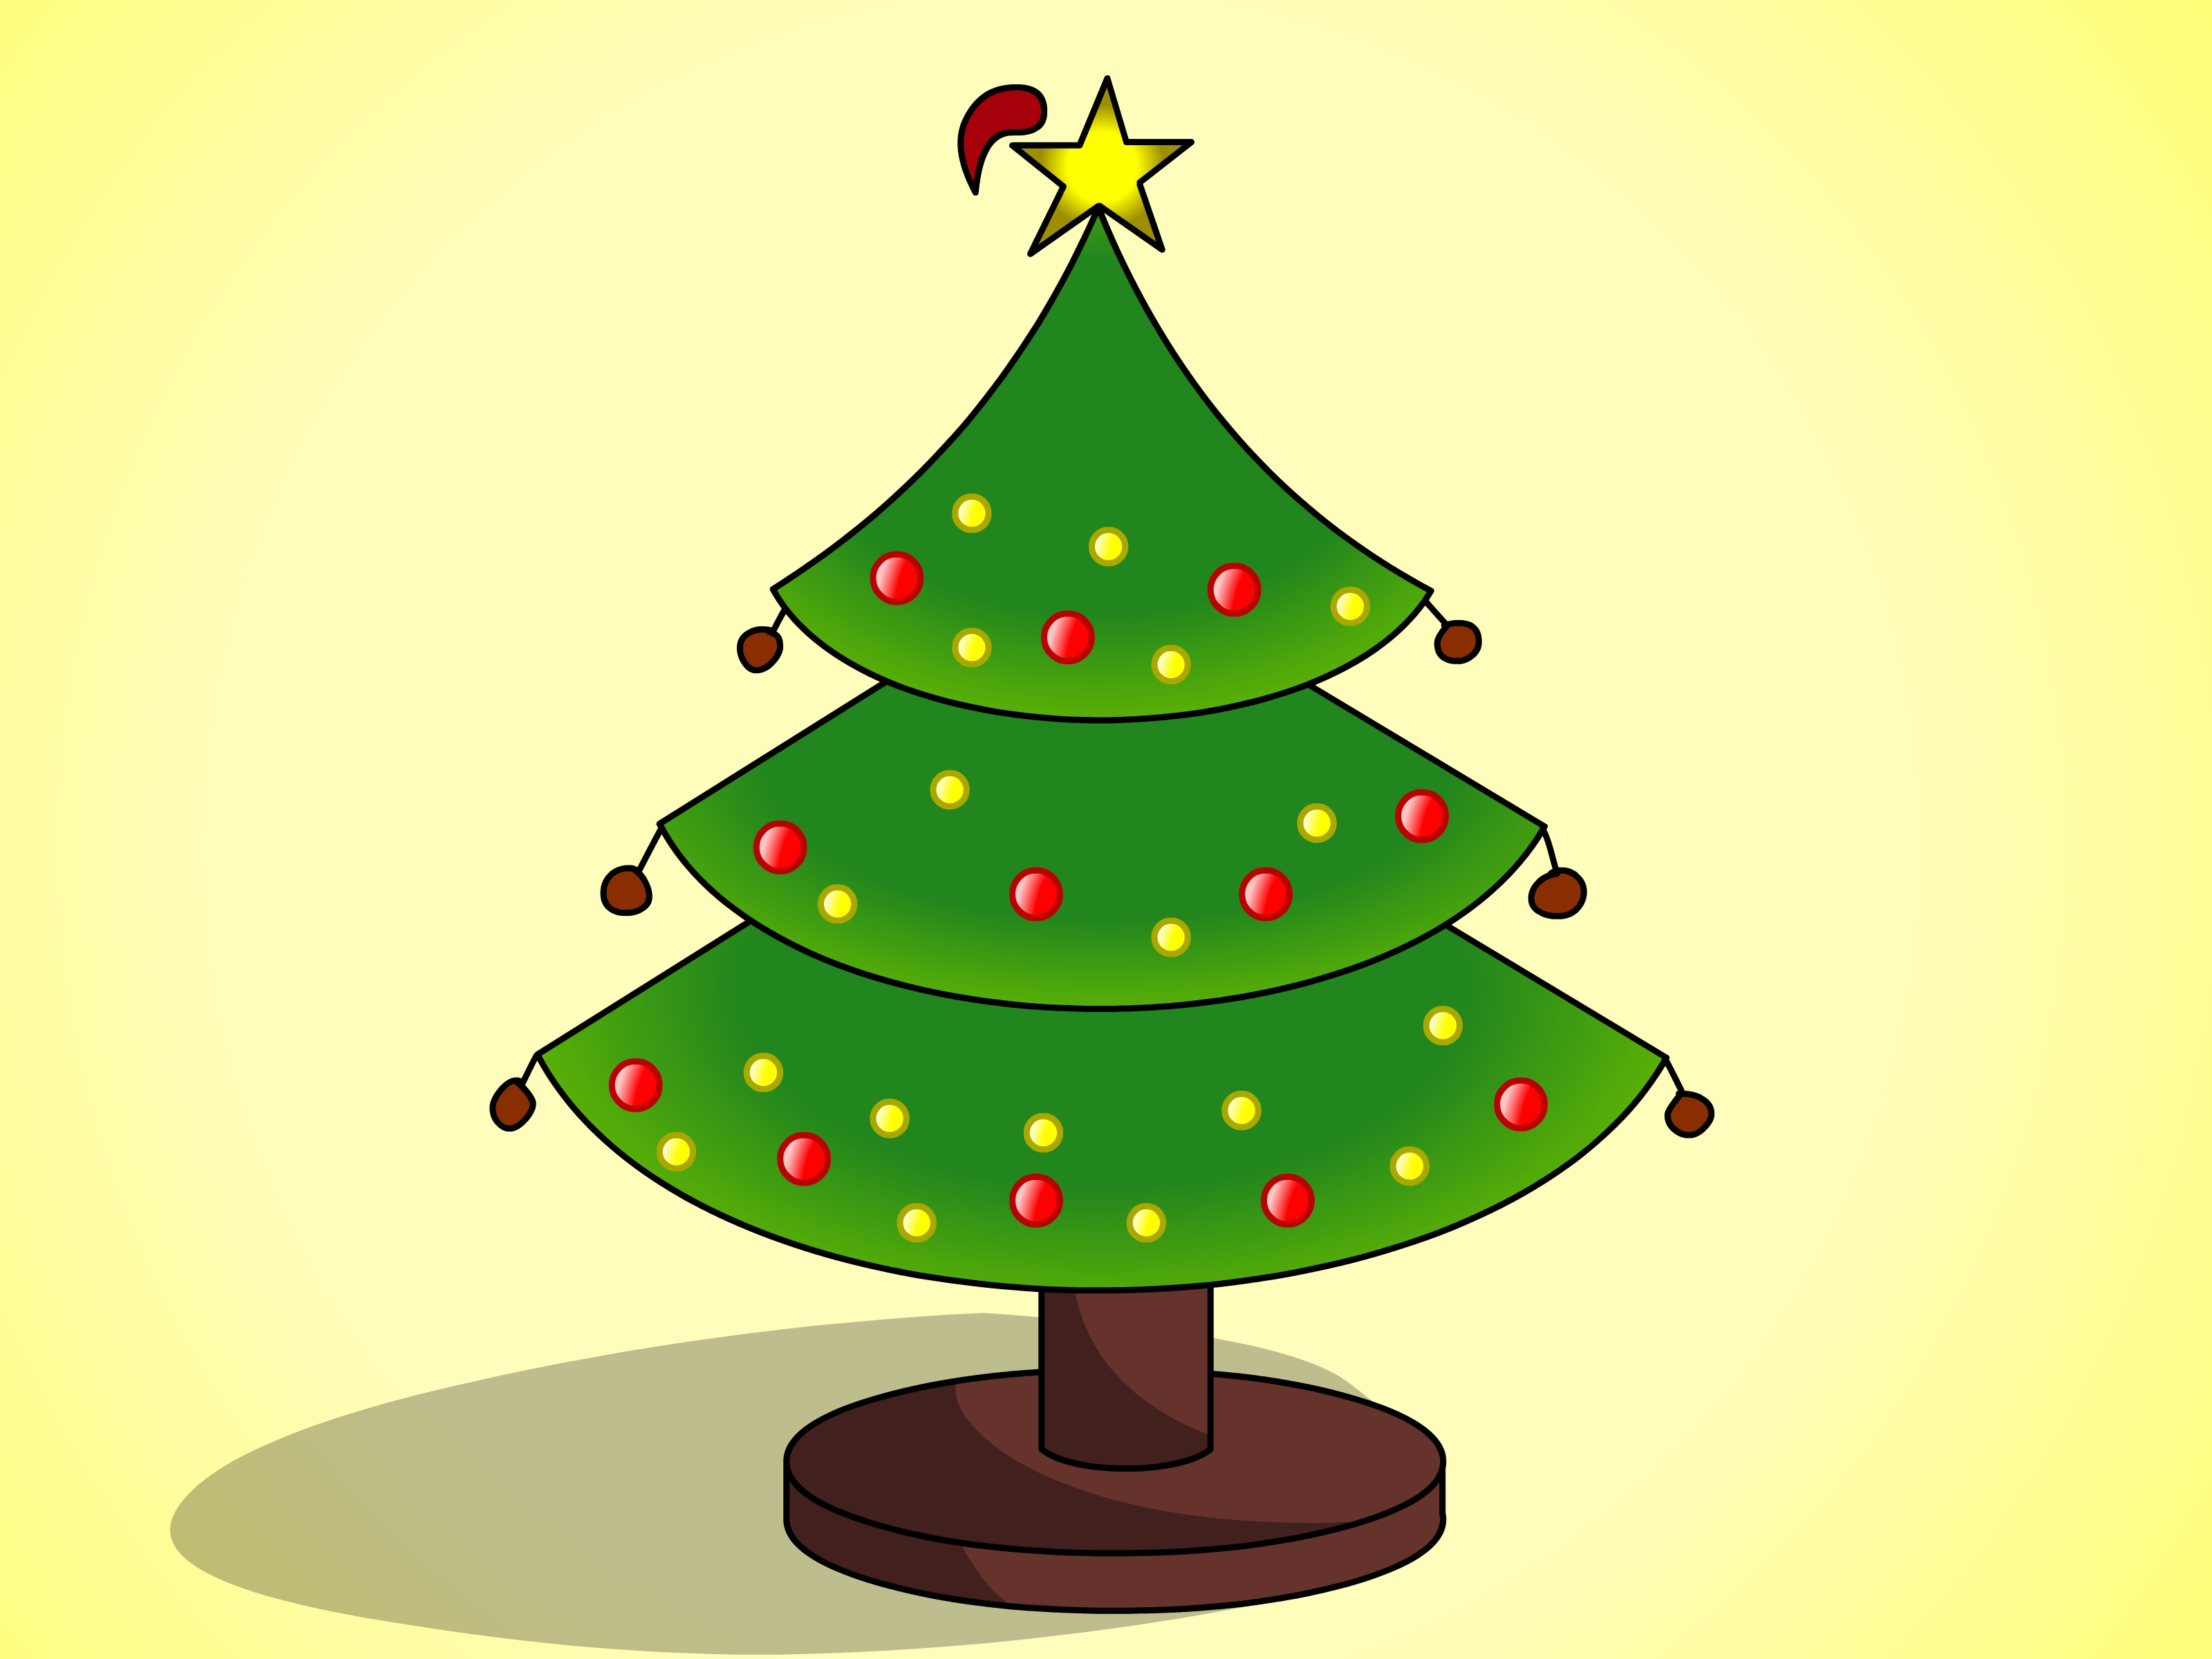 Christmas Trees Drawing at GetDrawings.com | Free for personal use ...